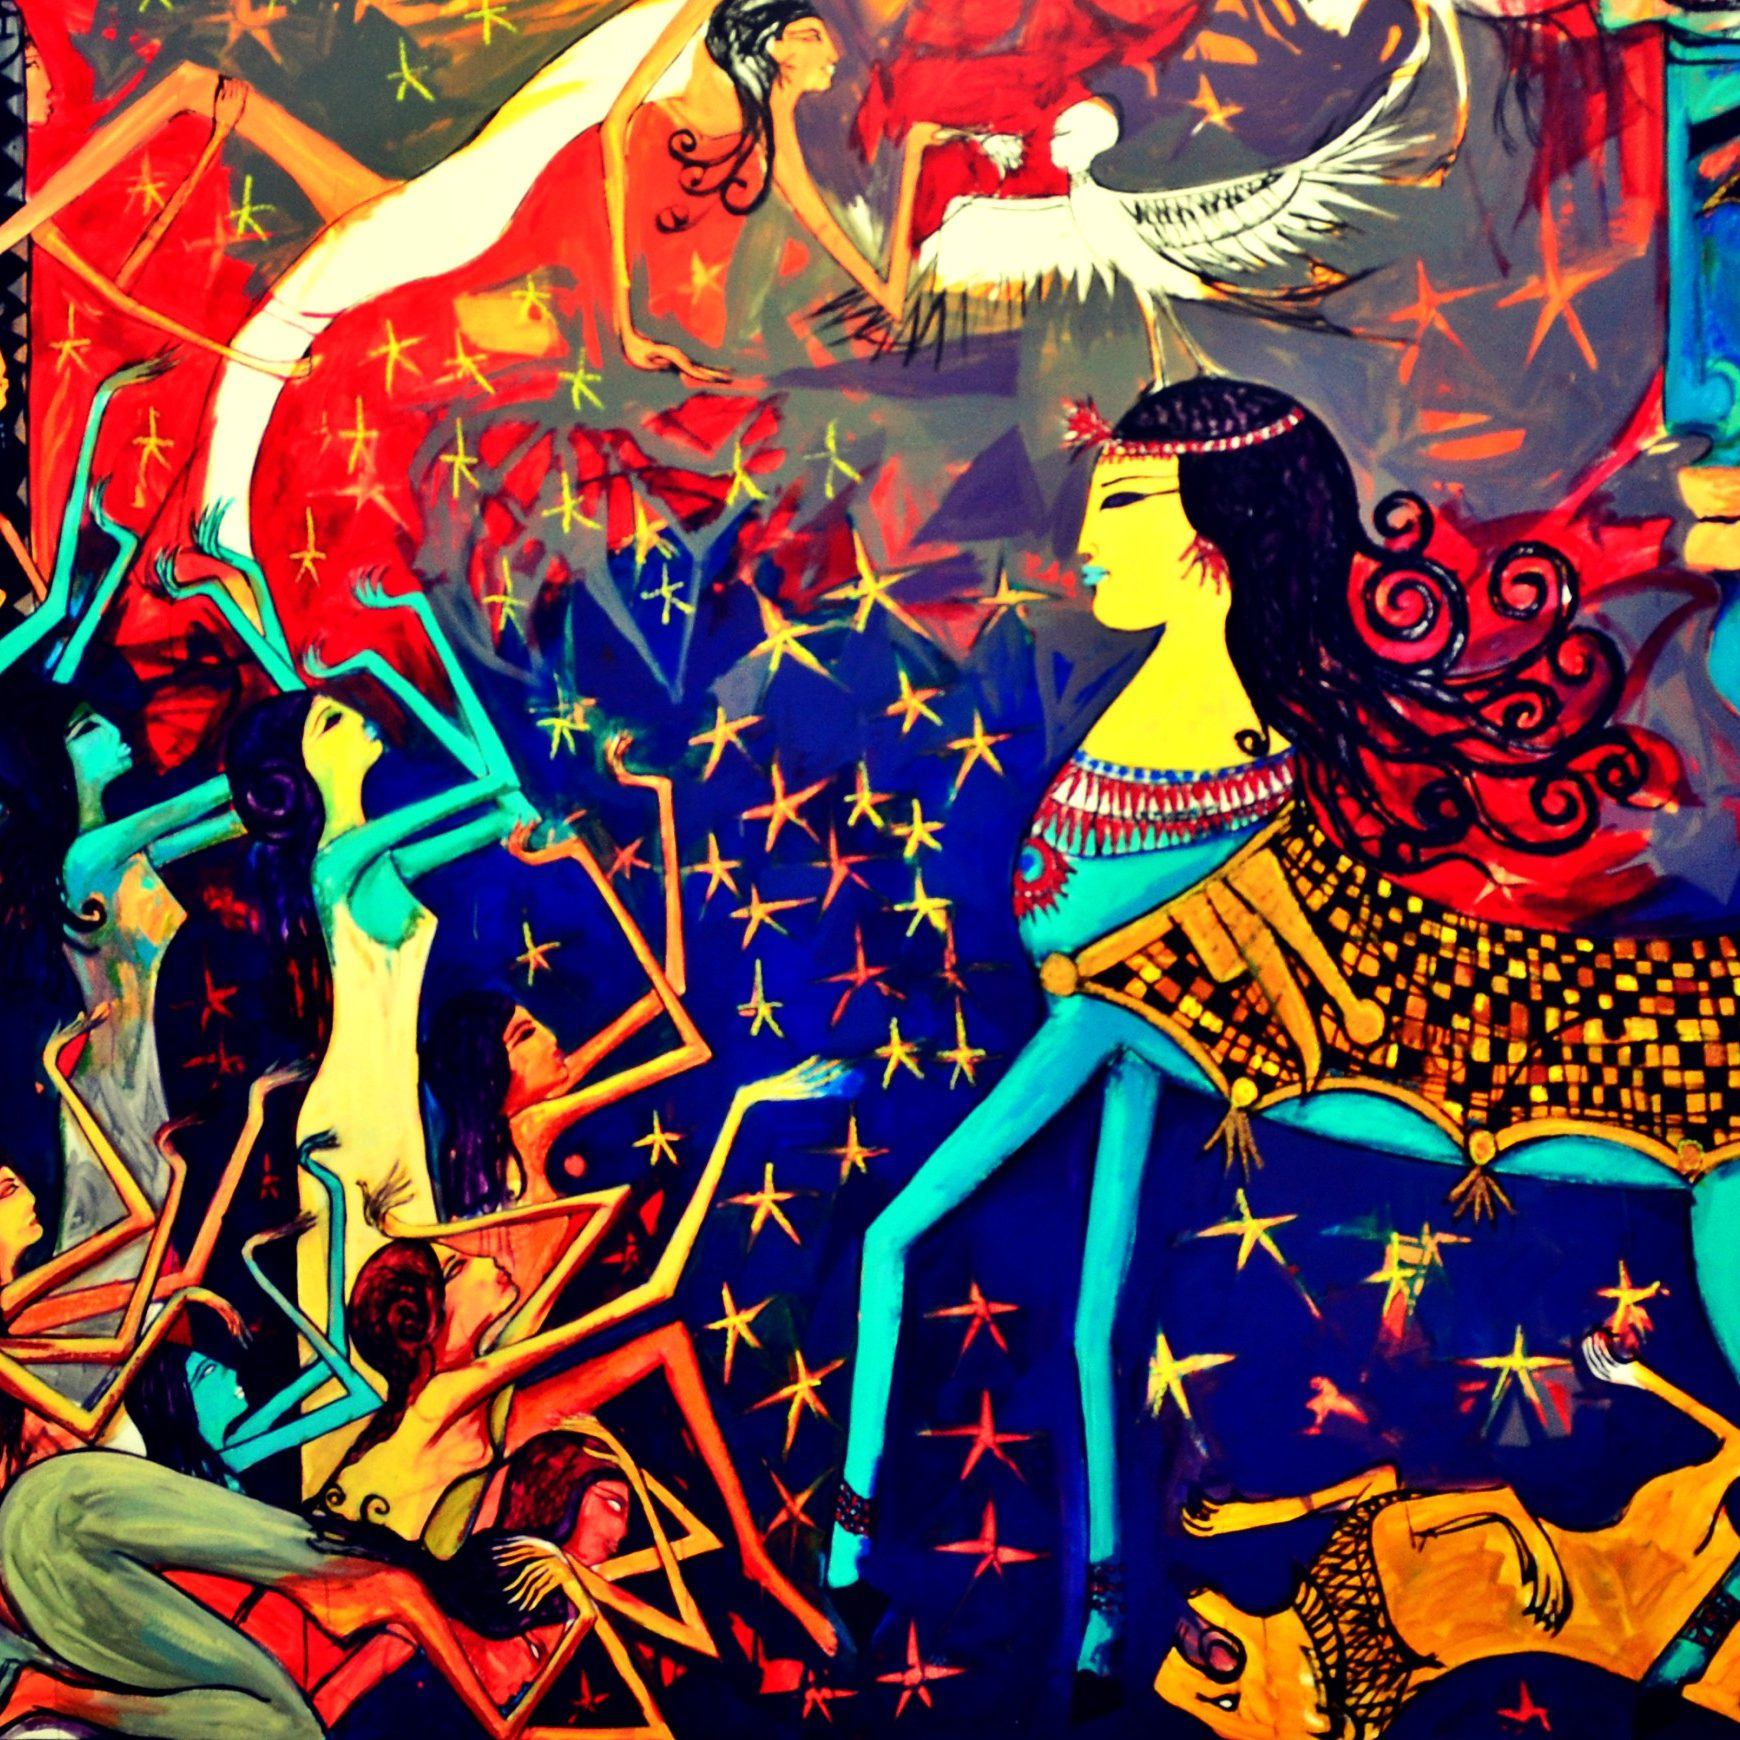 Heritage Conversing with Contemporary Society: Alaa Awad's Stunning Neo-Pharaonic Murals and Paintings